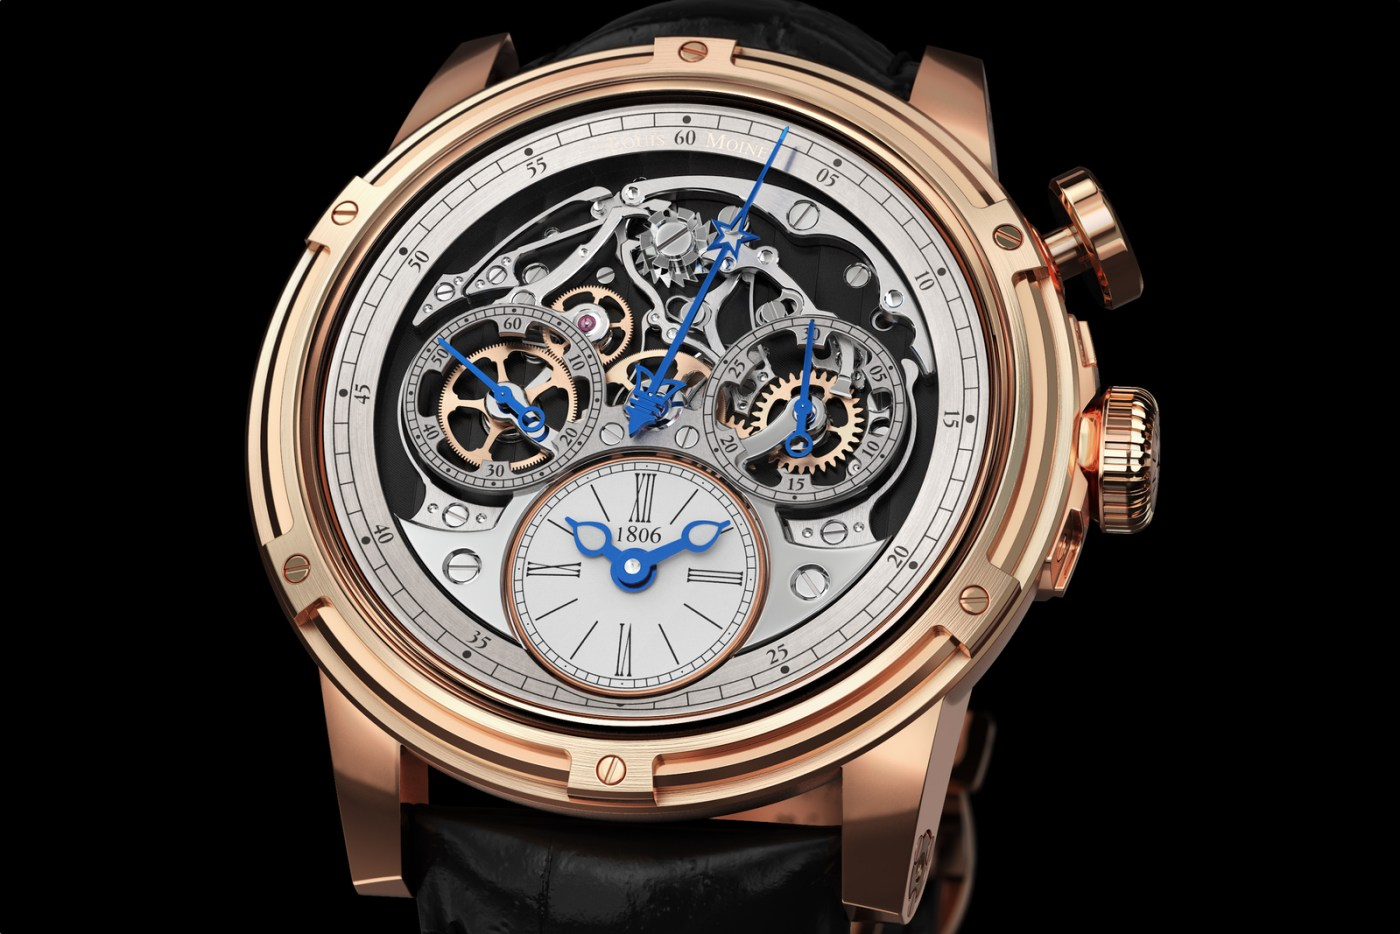 Louis Moinet Memoris Close-Up Official Brand image